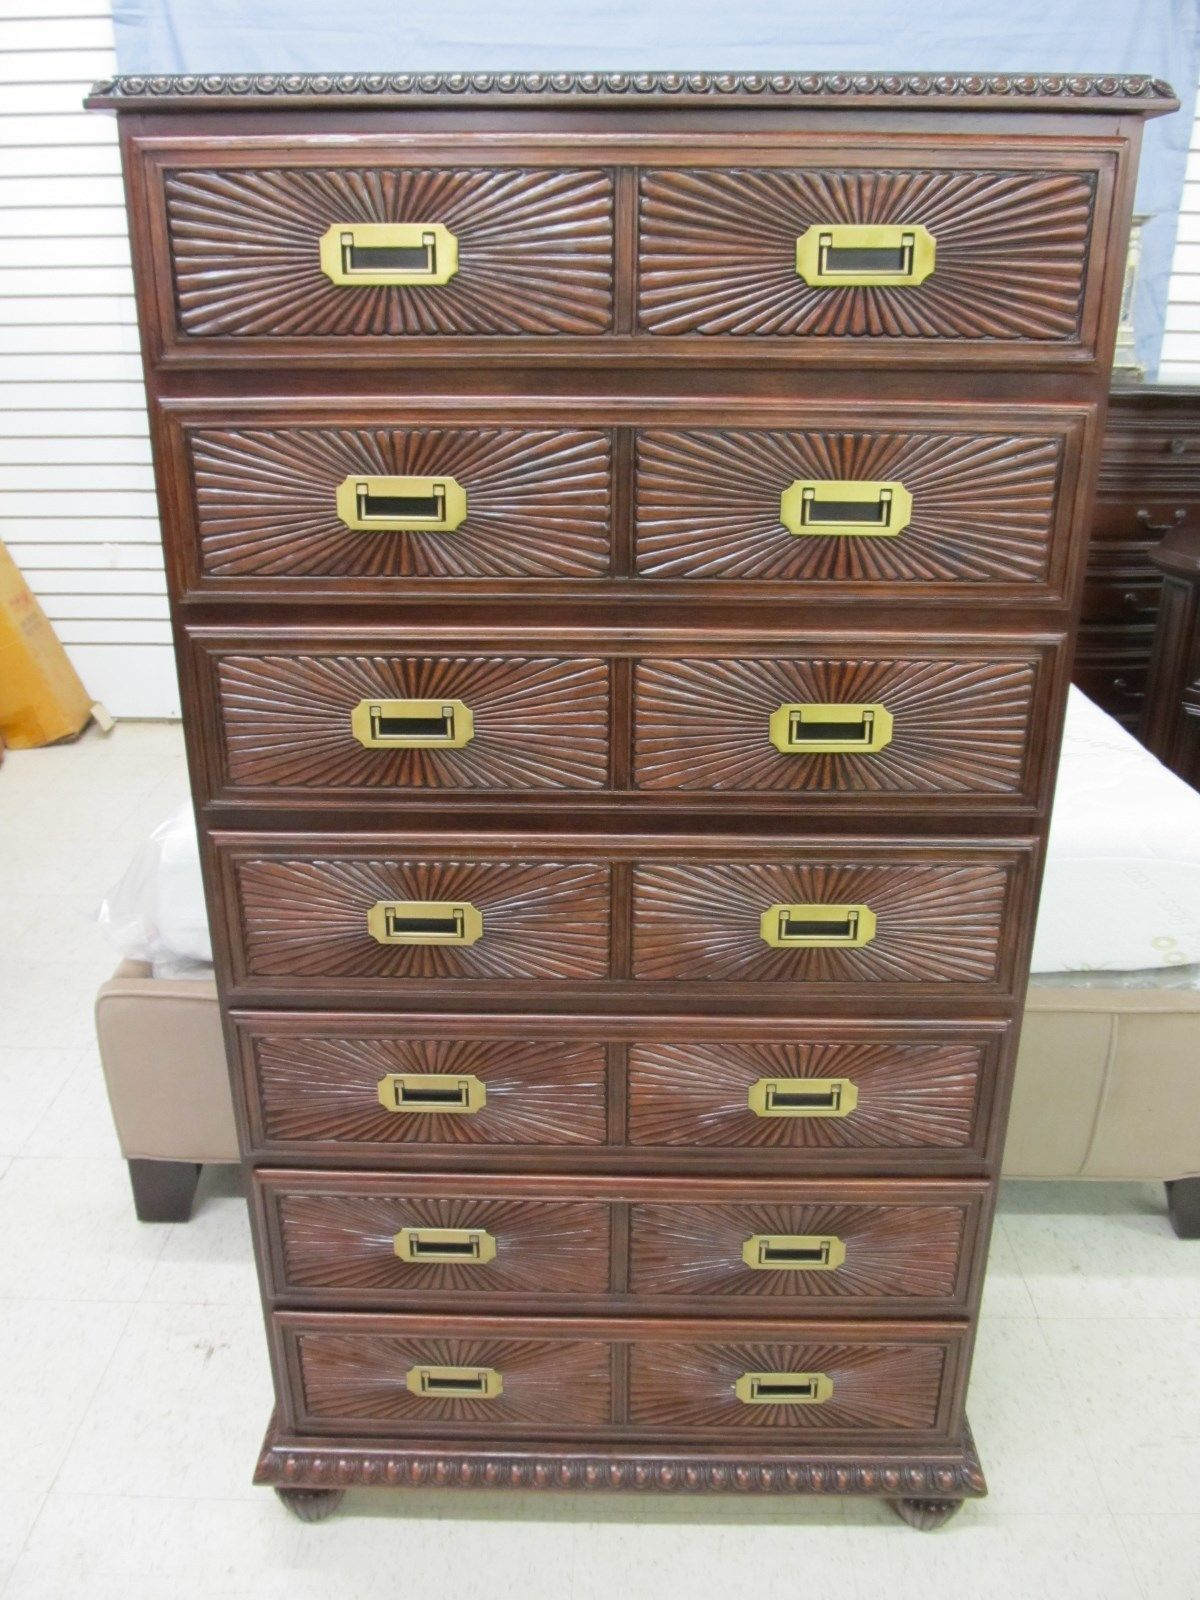 Henredon Tommy Bahama Carved Mahogany Chest of Drawers Lingerie Chest 0810